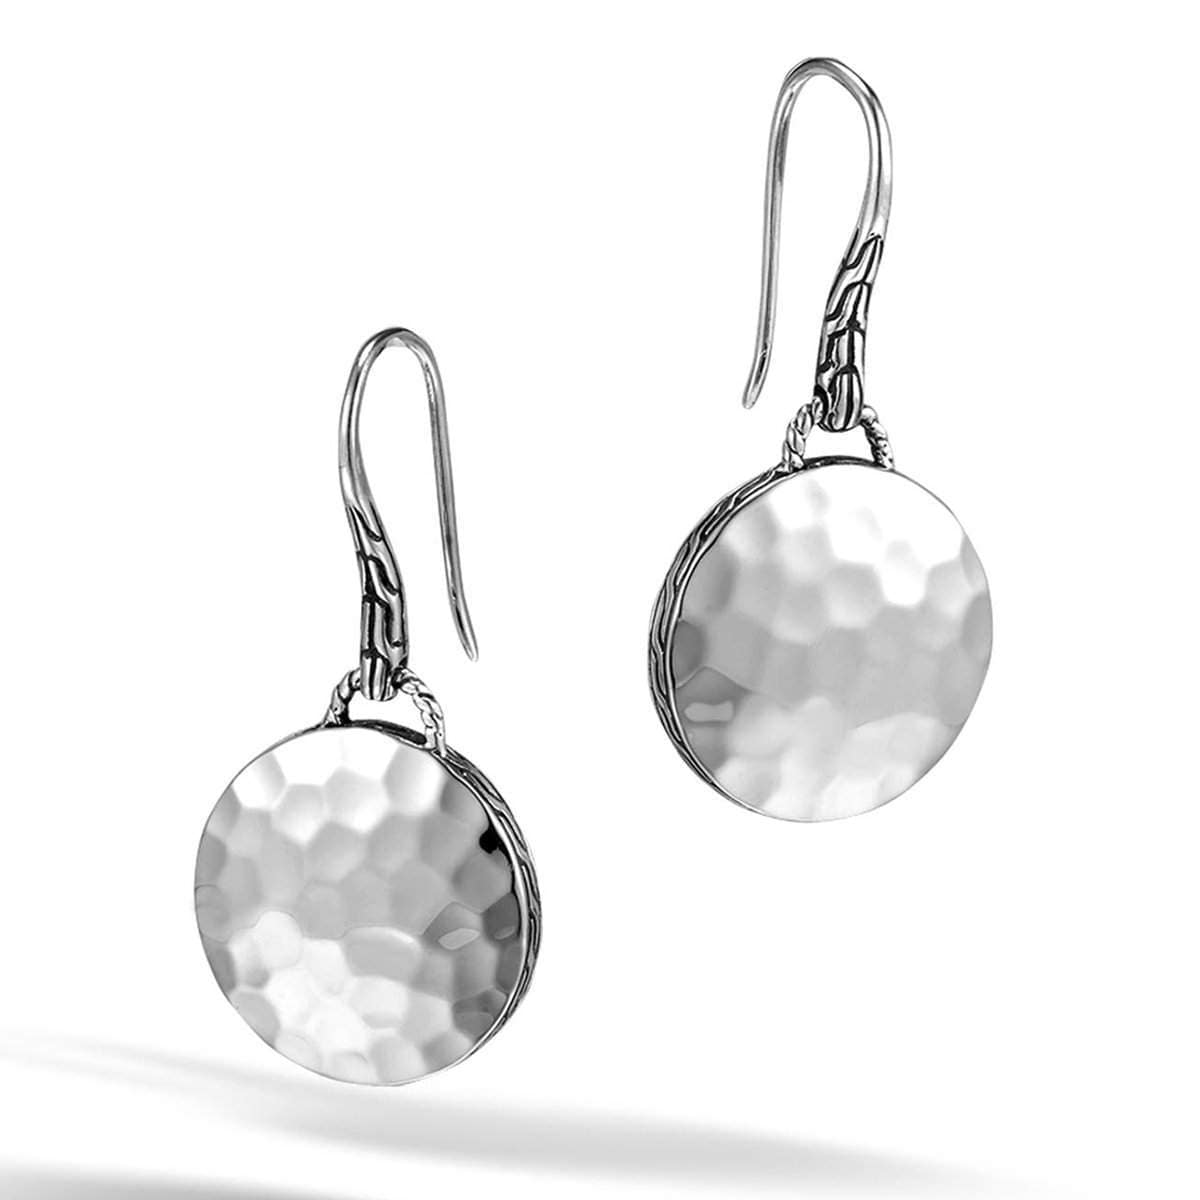 Dot Silver Round Drop Earrings - EB7154-John Hardy-Renee Taylor Gallery